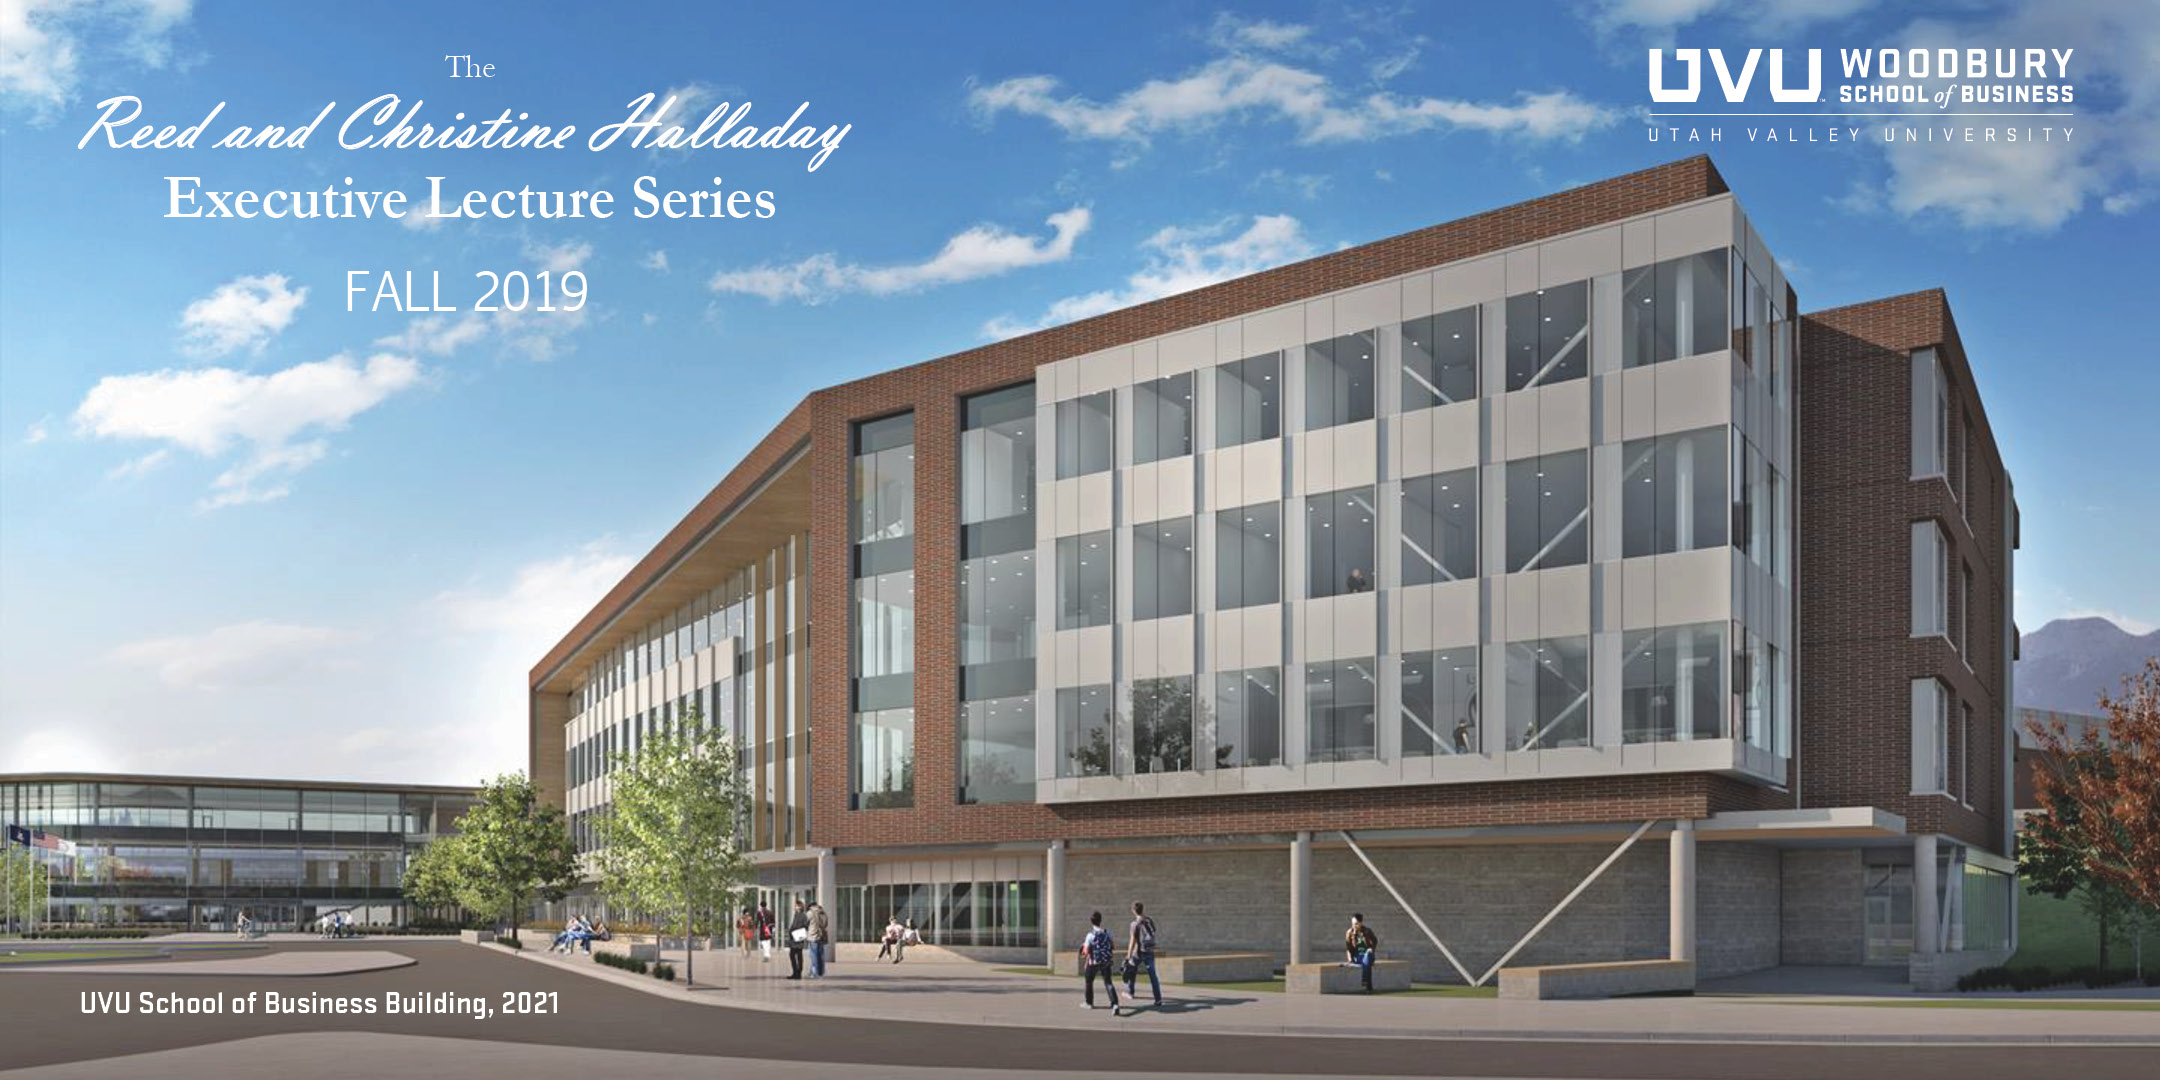 The Reed and Christine Halladay Executive Lecture Fall 2019 (Rendering of the future business building)